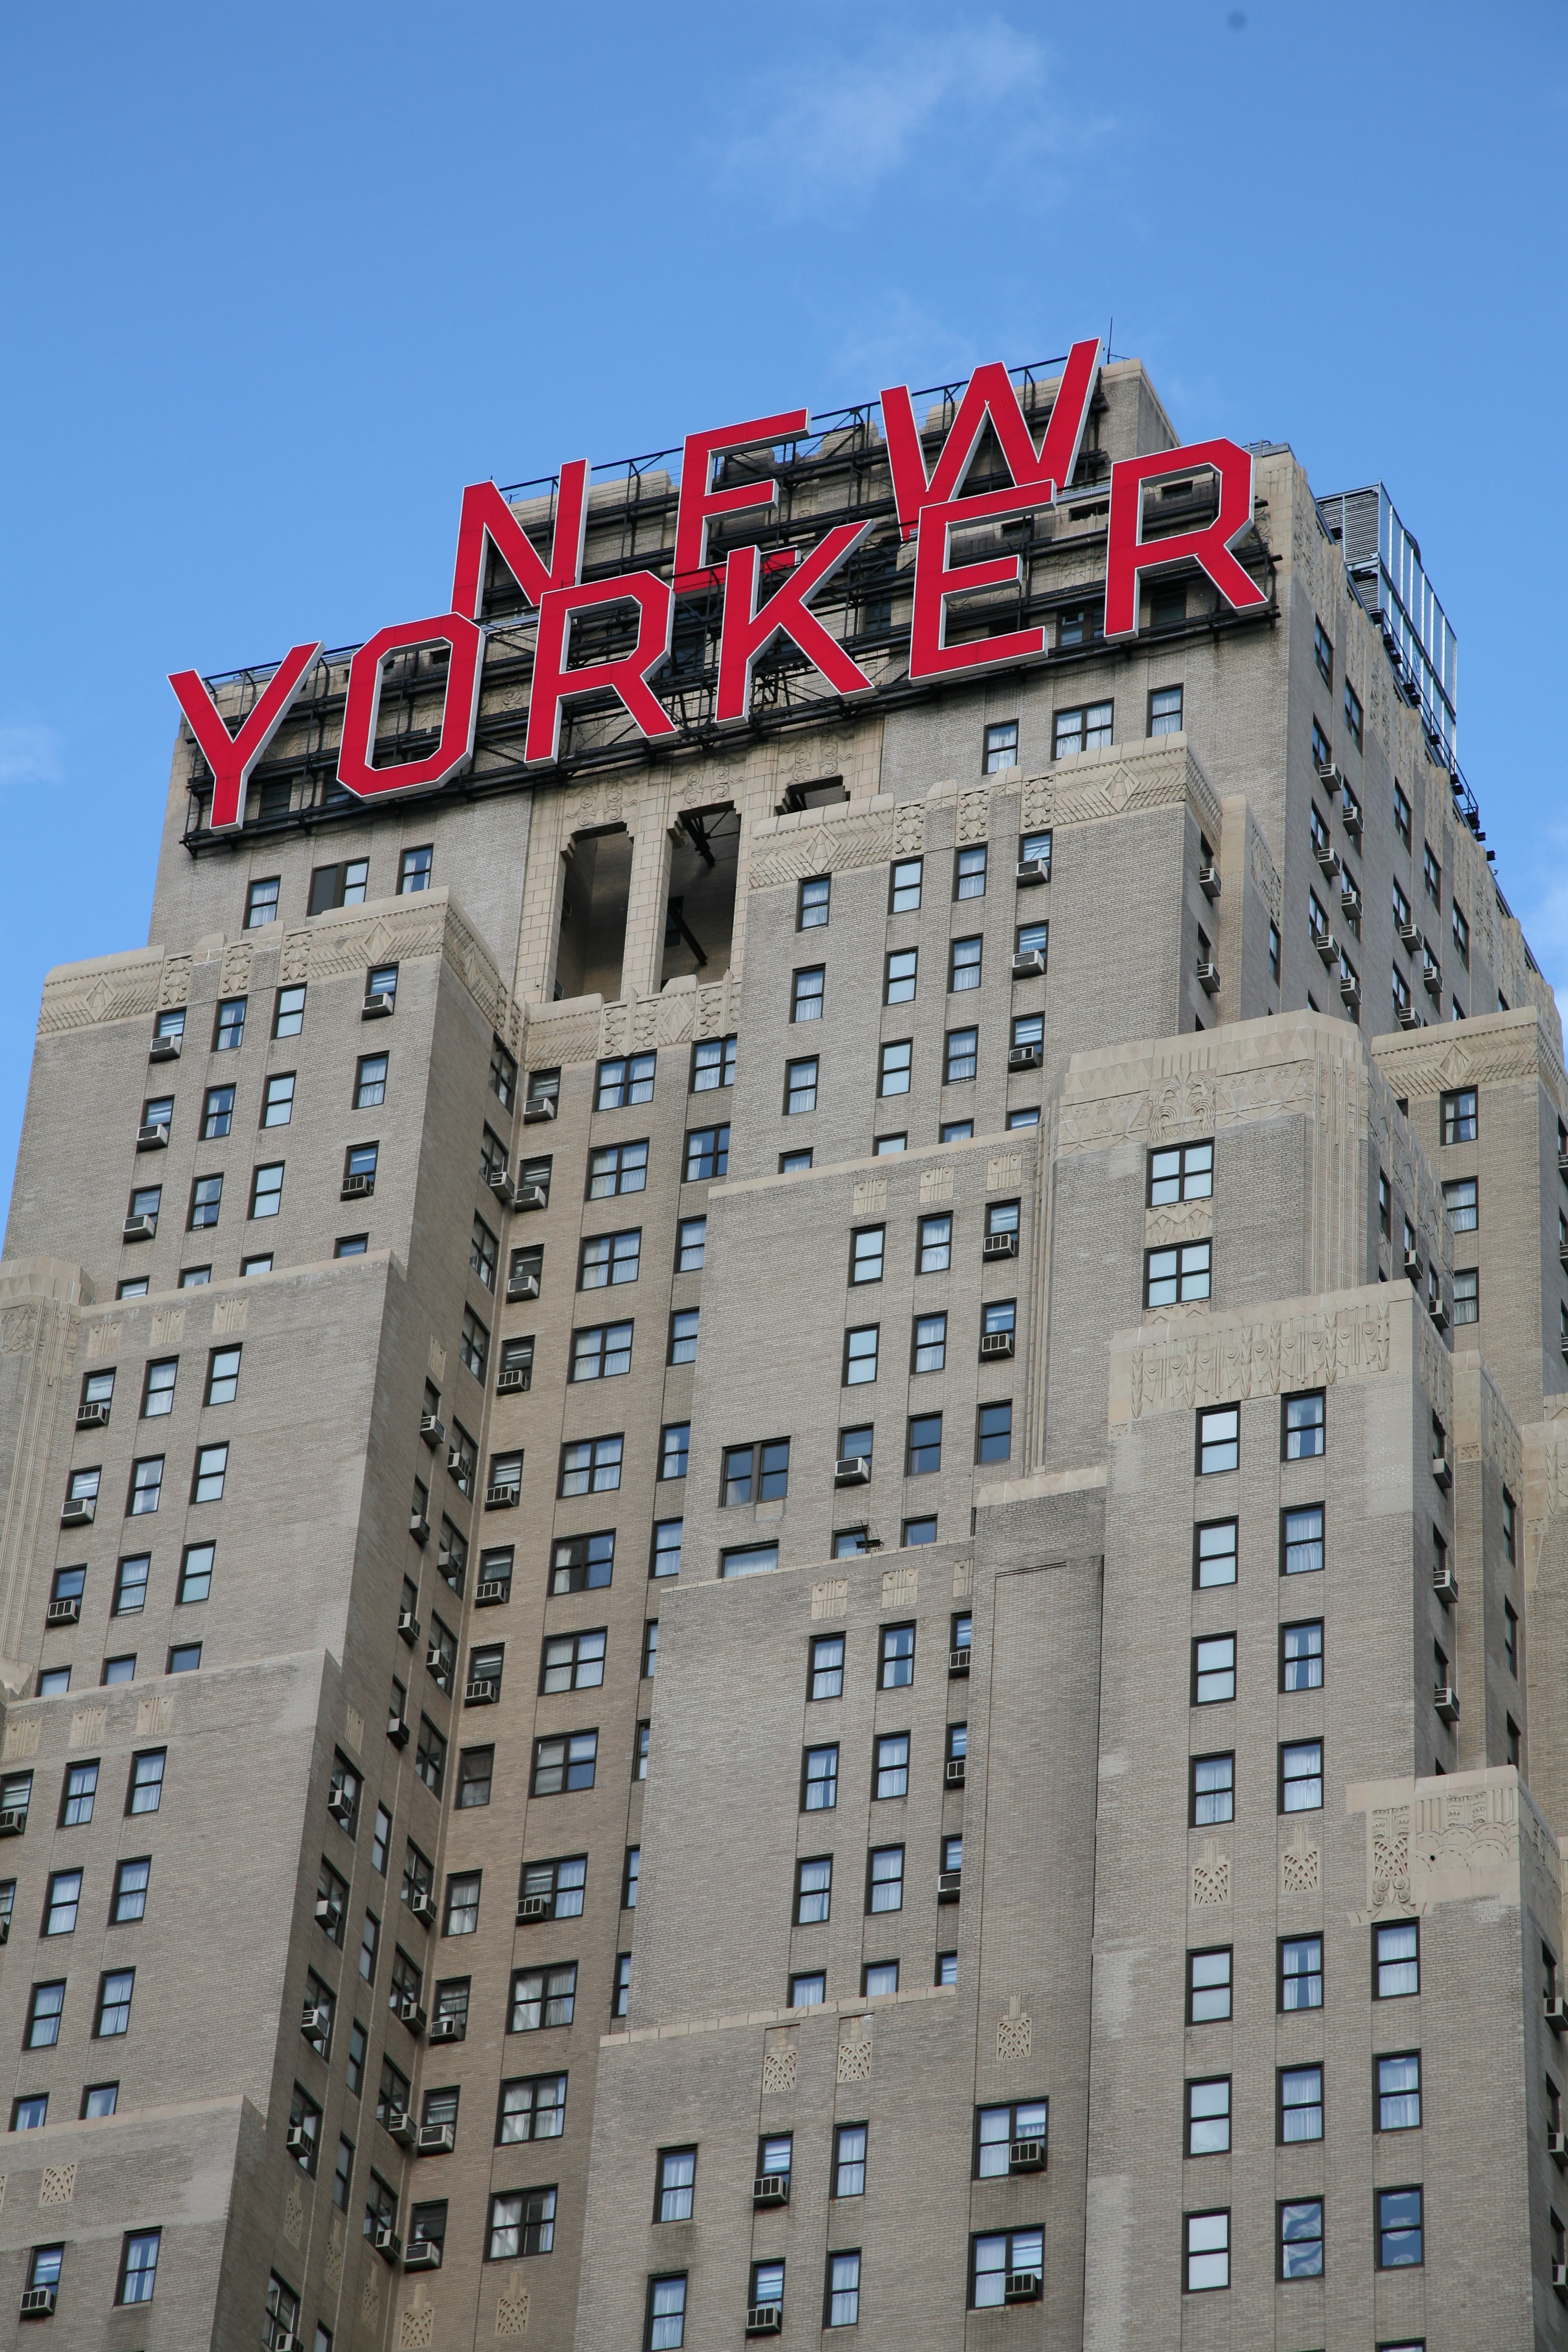 New Yorker Hotel Cologne